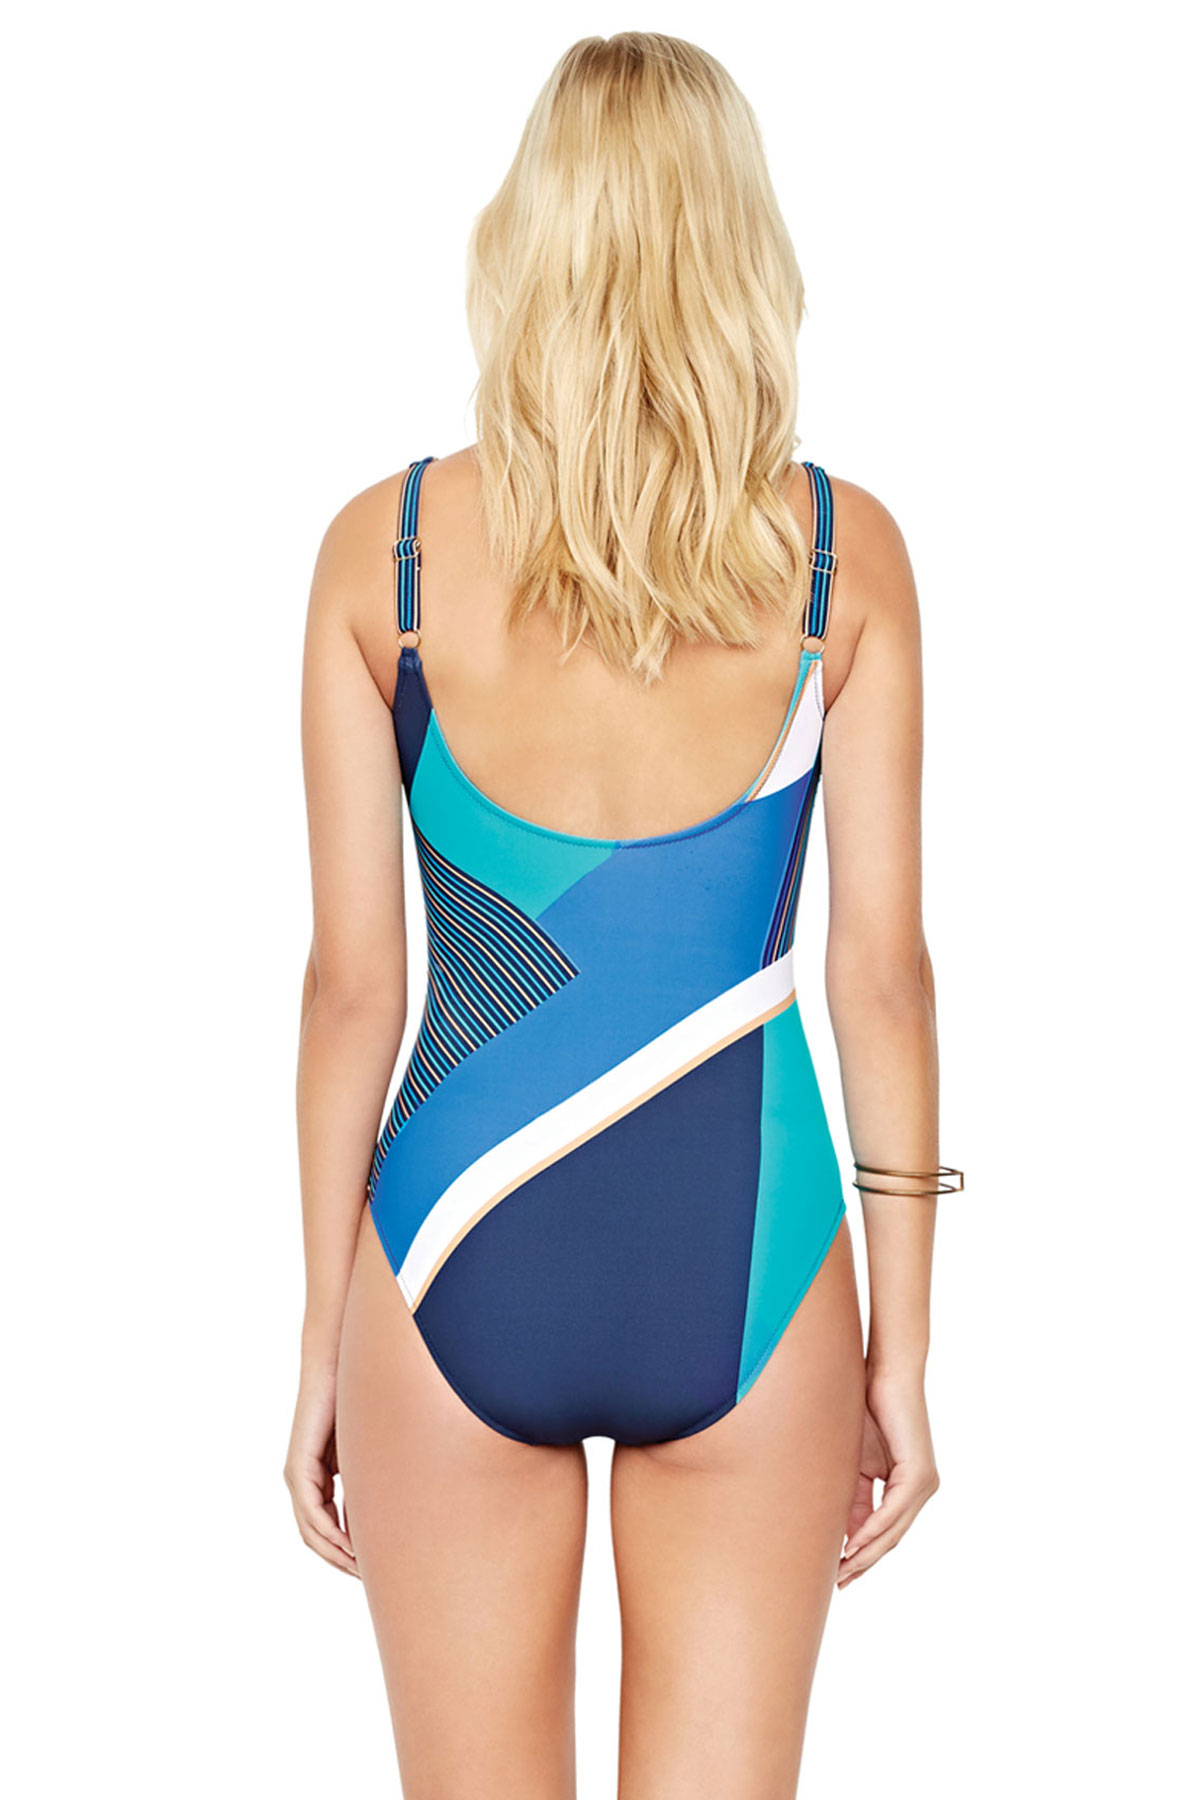 Square Neck Over The Shoulder One Piece Swimsuit  - Multi Blue 2